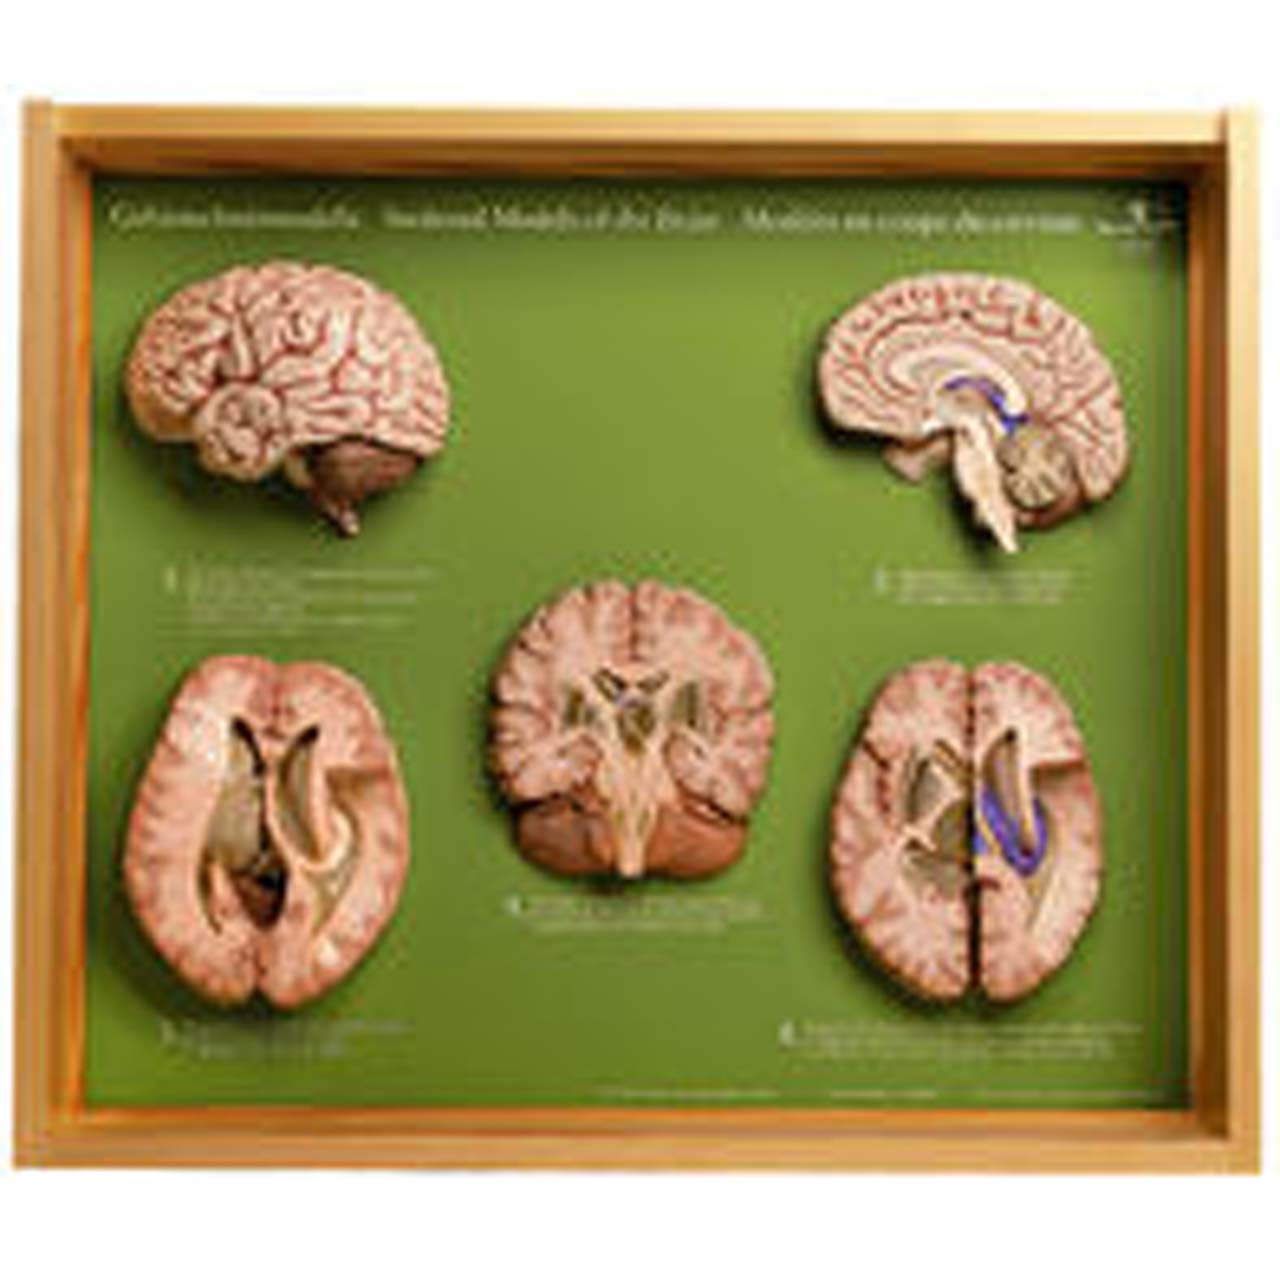 BS45 - 5 Section Models of the Brain